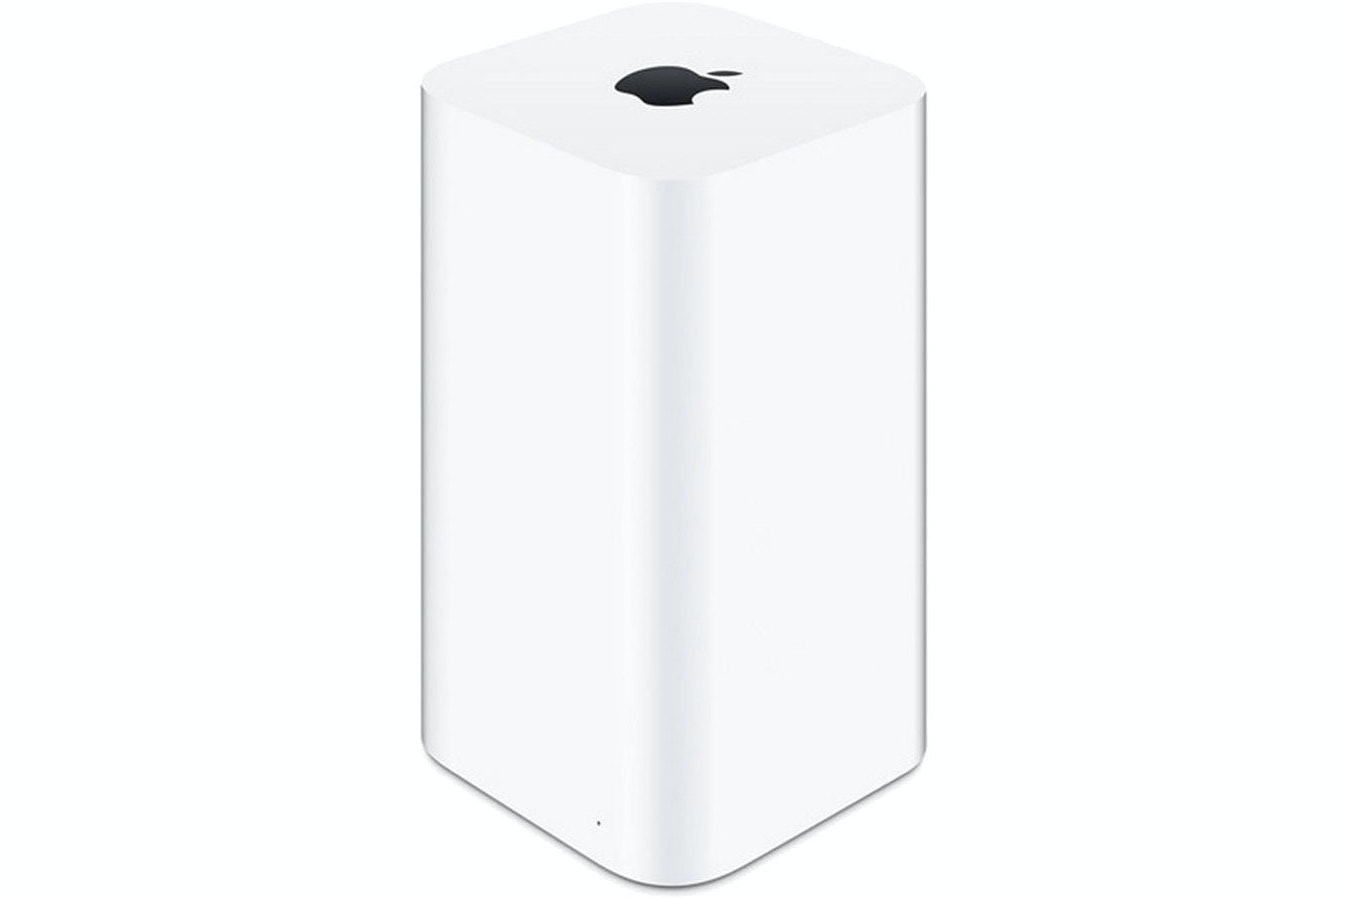 Apple AirPort Extreme Router | ME918B/A